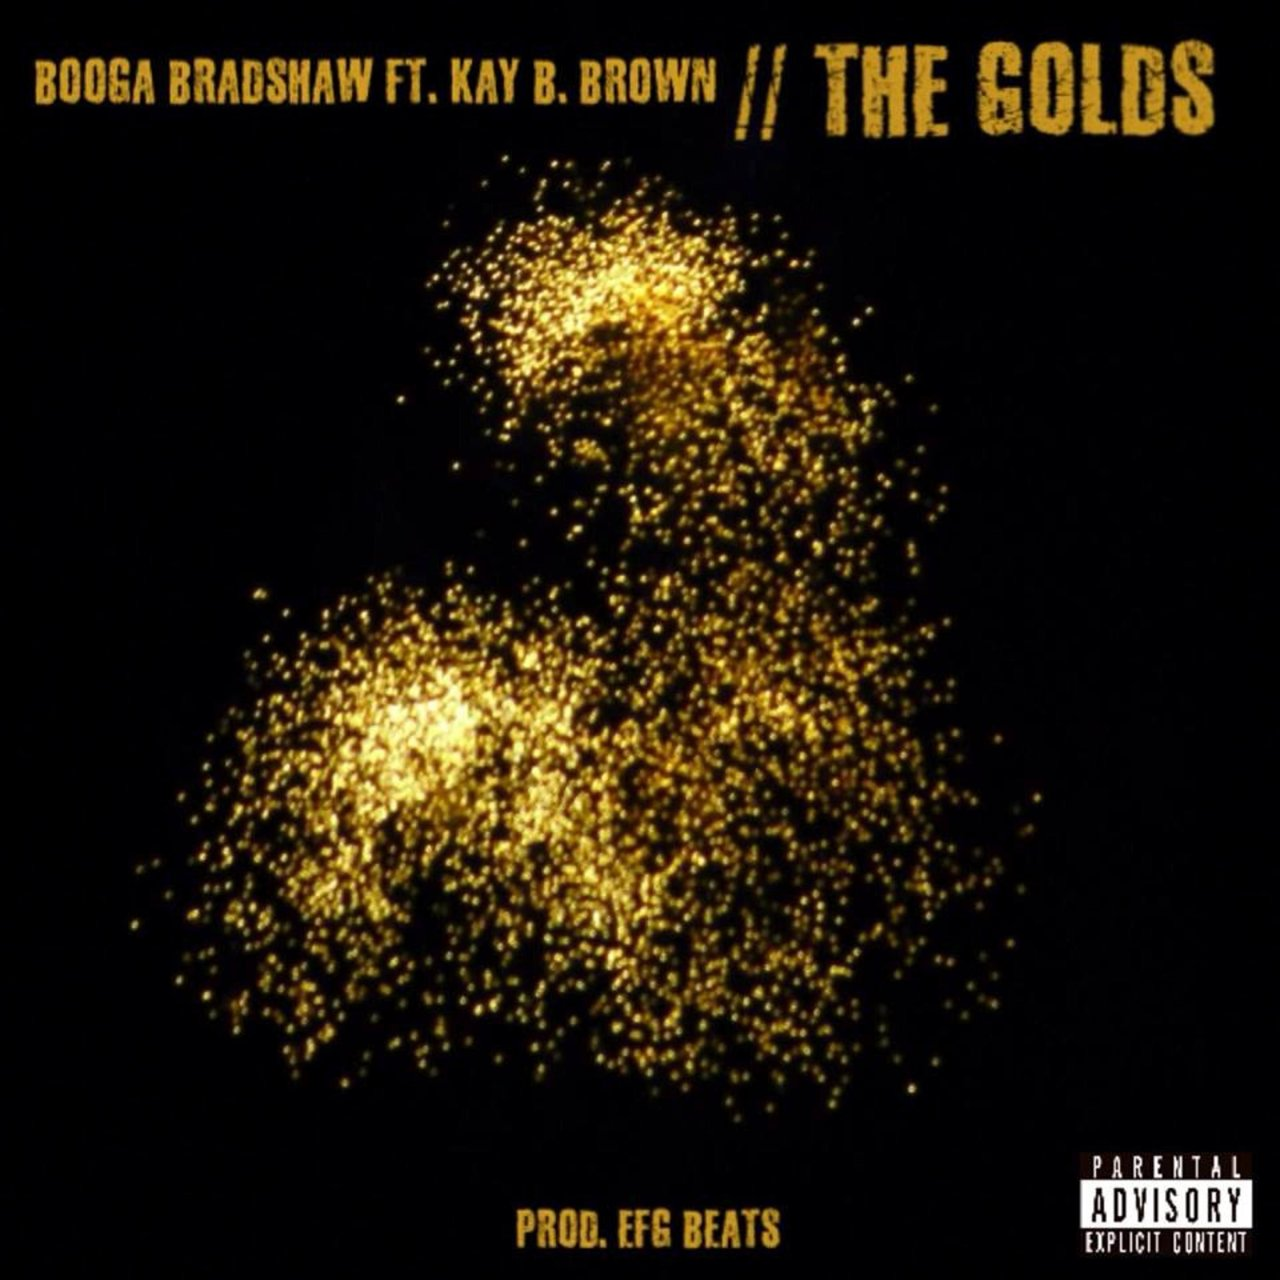 The Golds (feat. Kay B Brown)